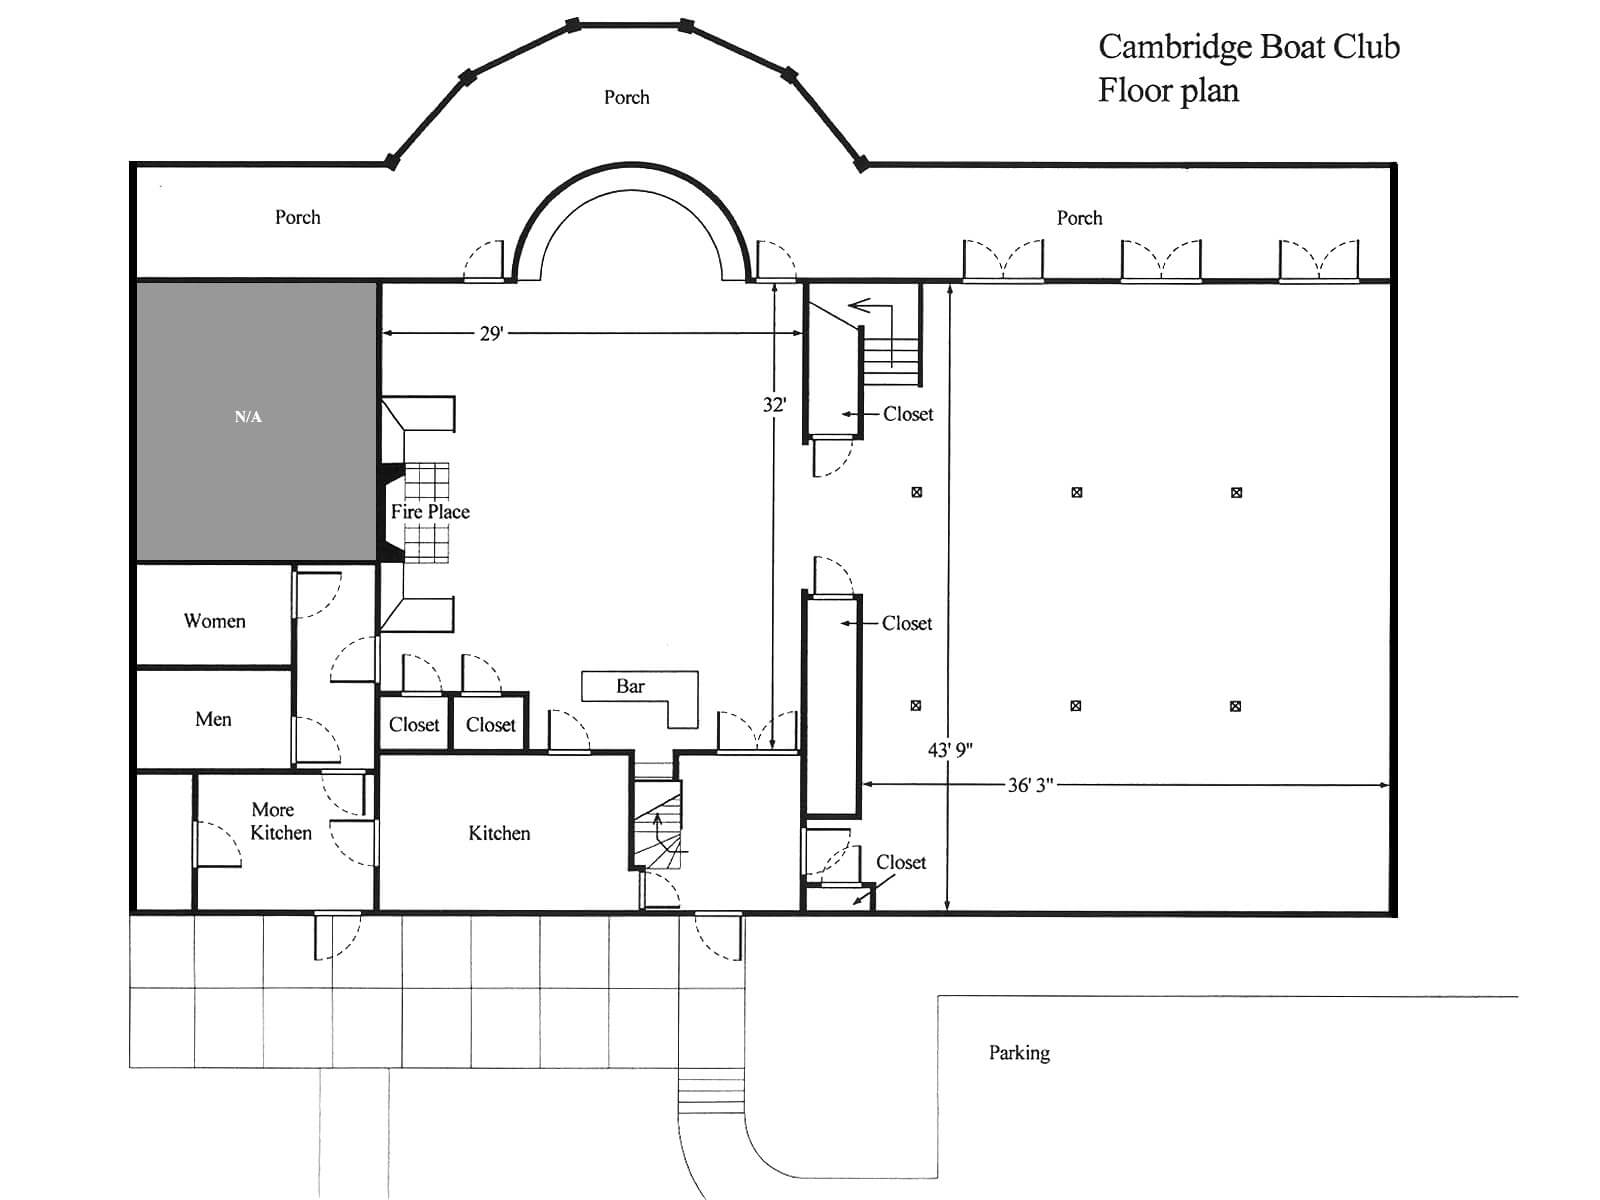 Floor plan of the cambridge boat club cambridge boat club Floor plans with pictures